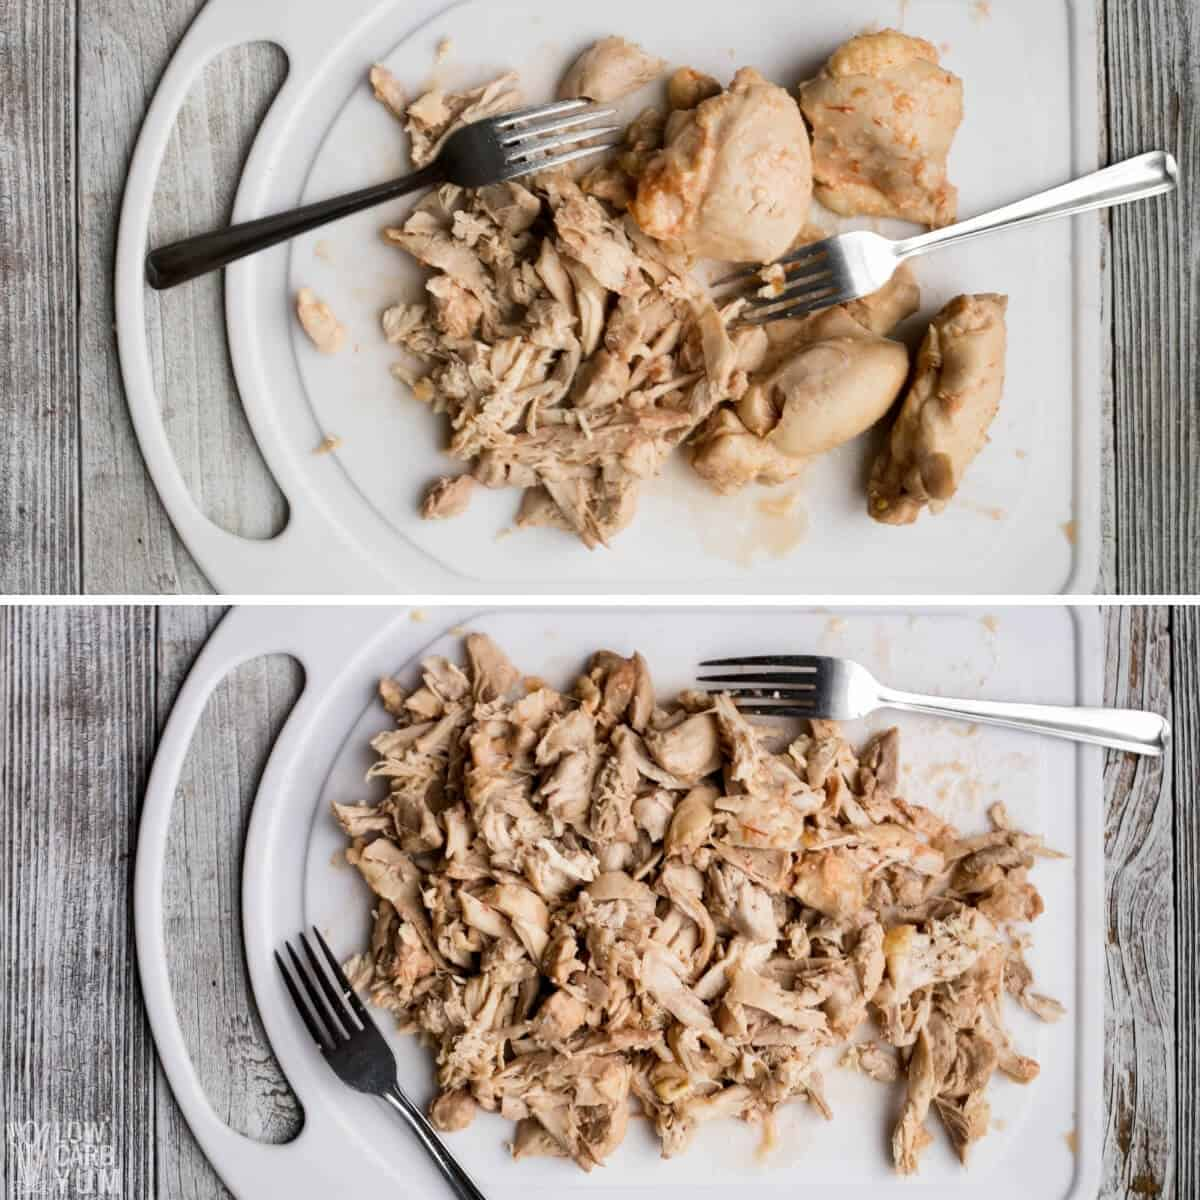 shredding the cooked chicken